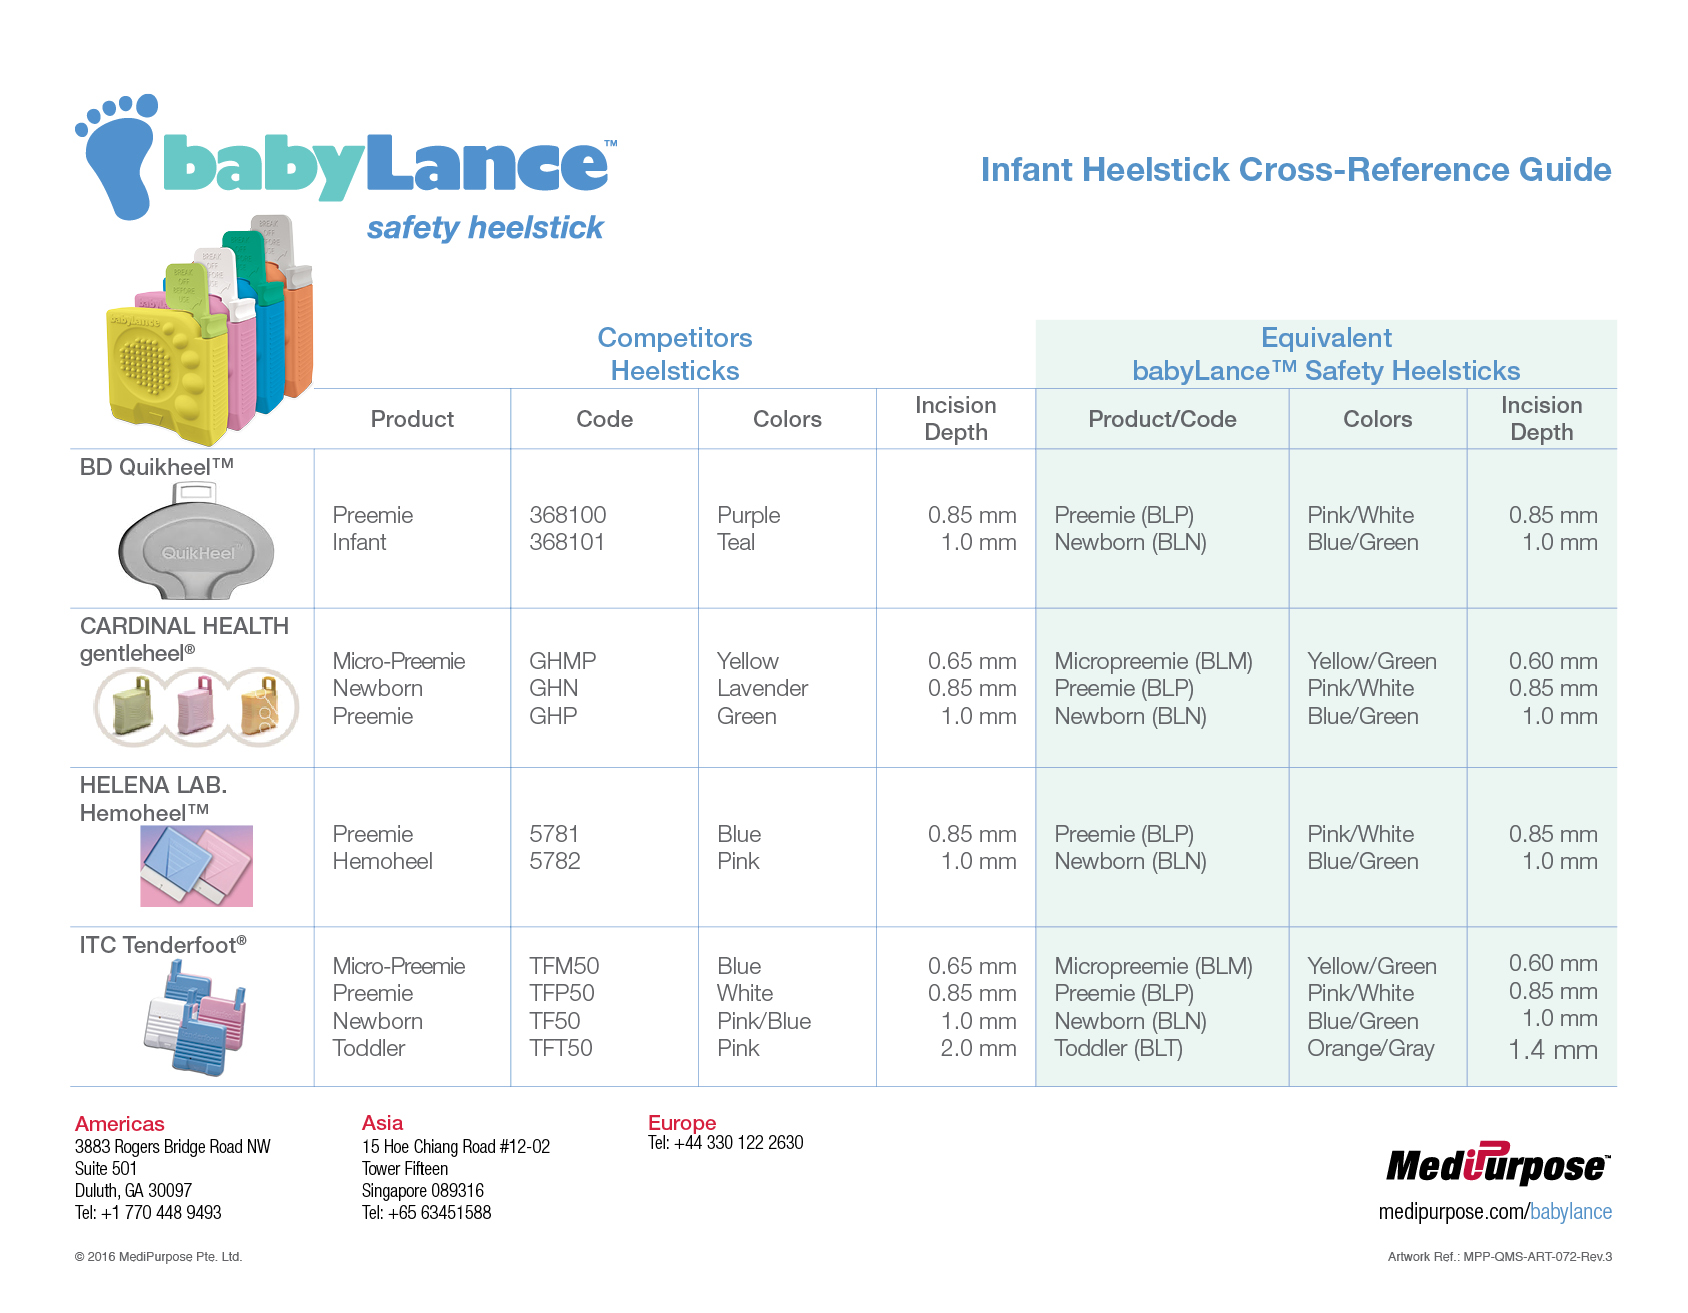 babyLance™ Safety Heelstick Cross-Reference Guide